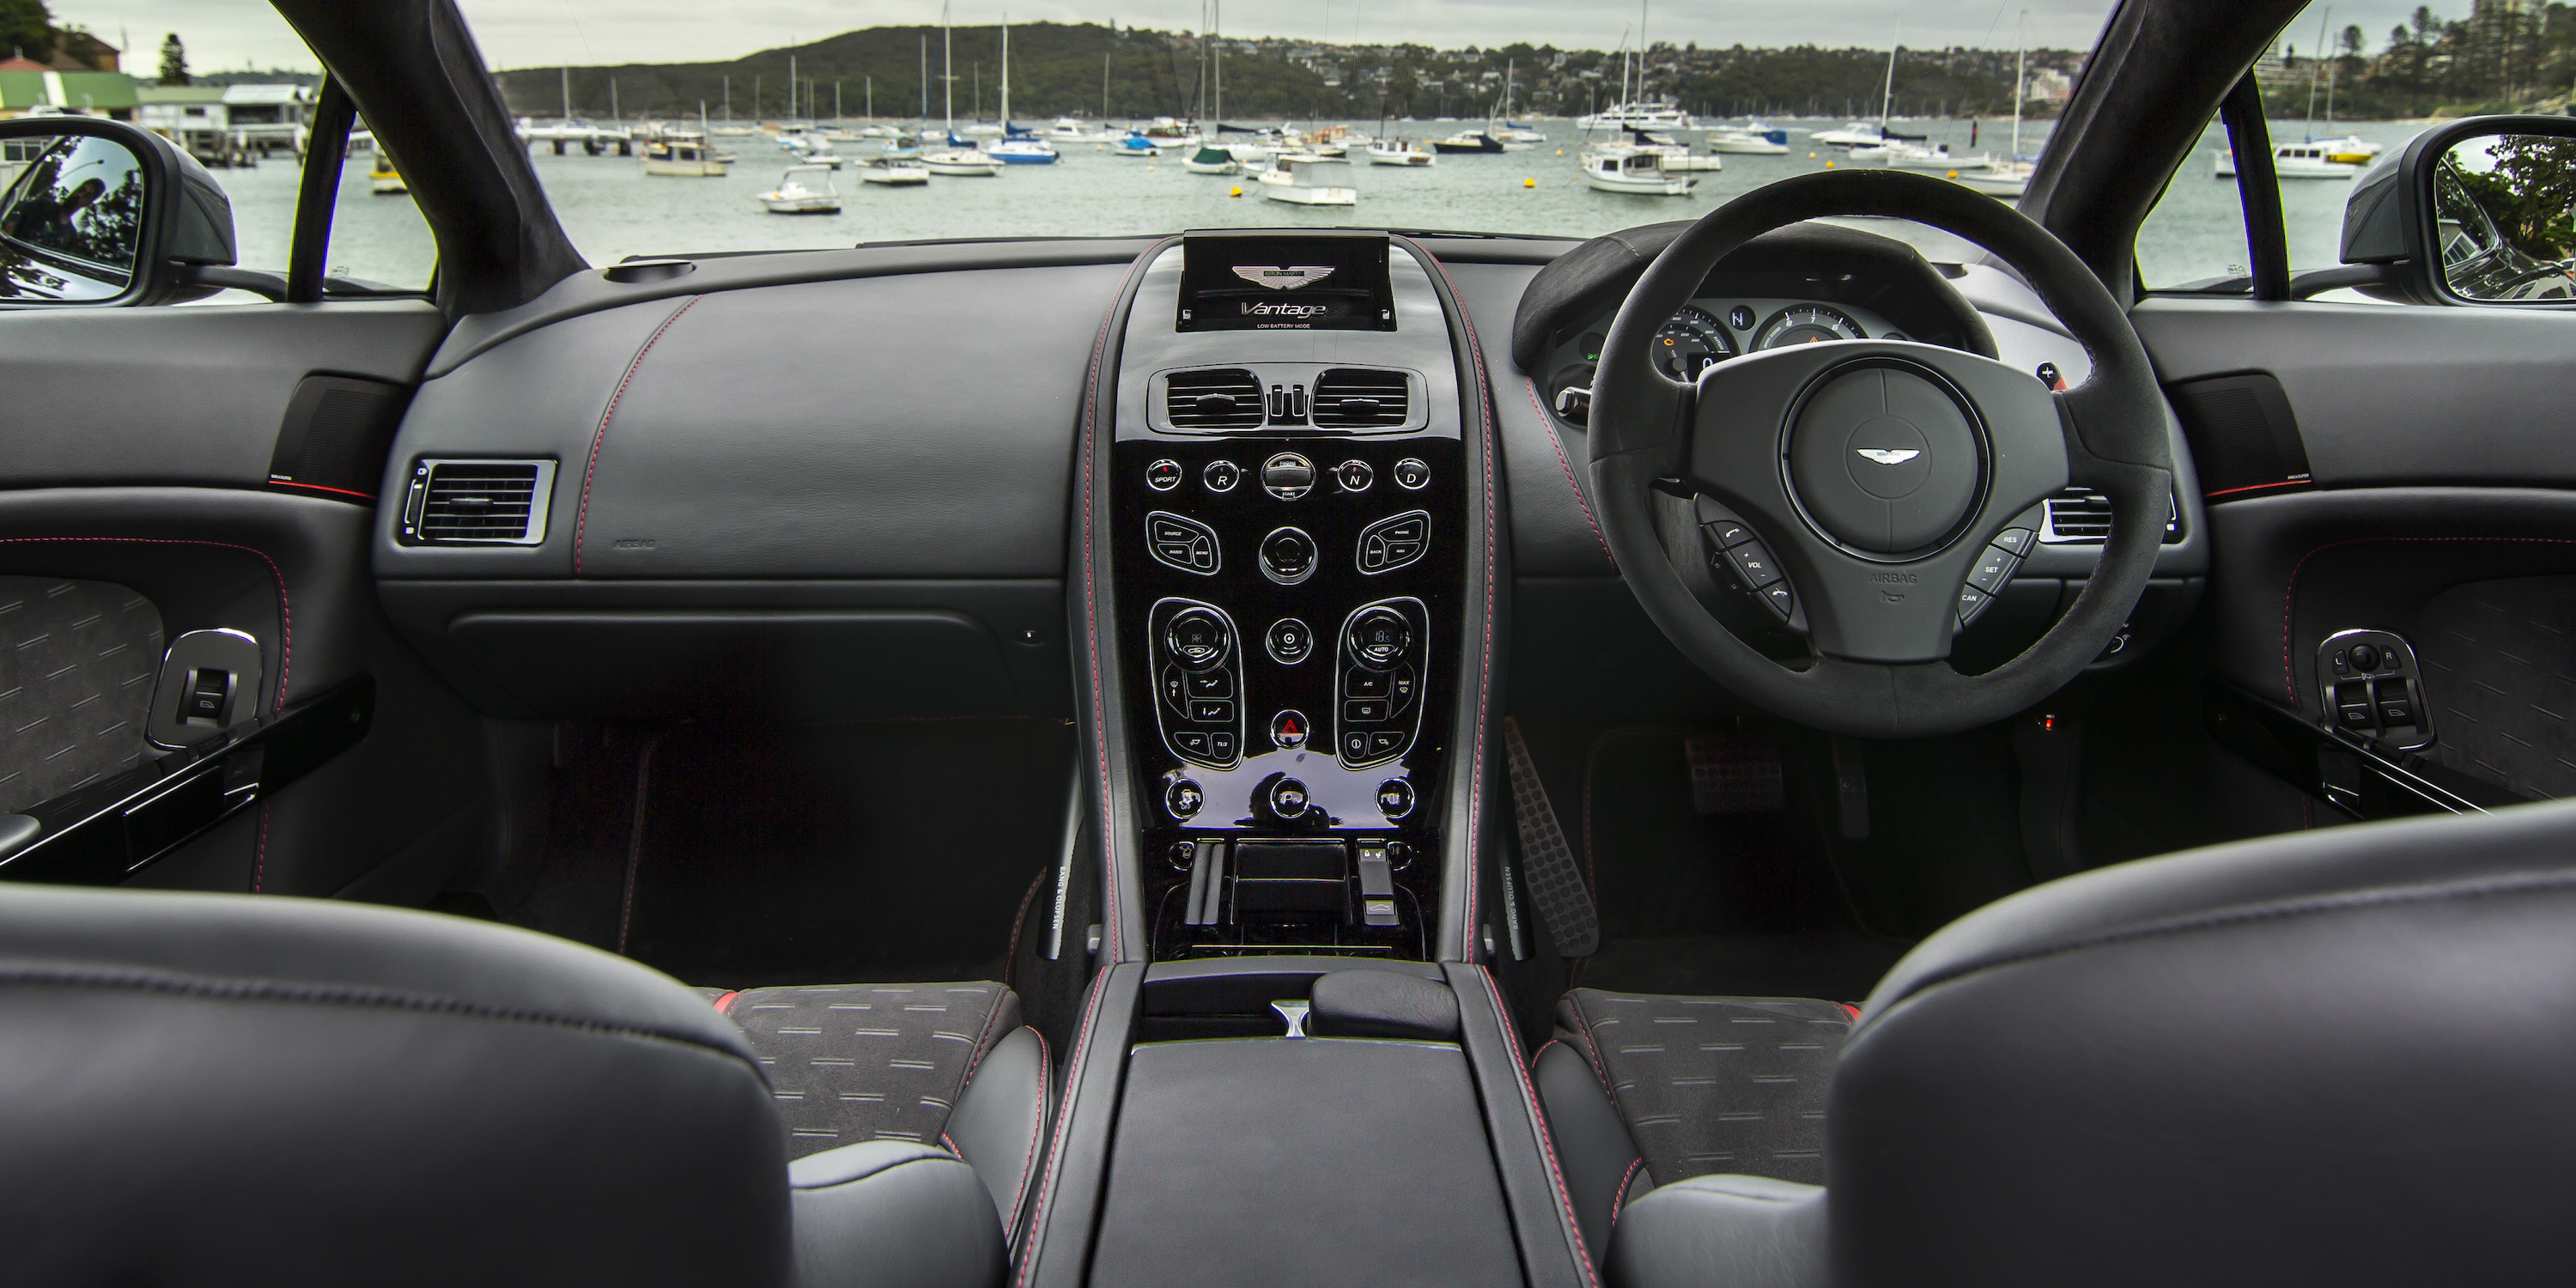 2016 Aston Martin Vantage Gt Interior (Photo 14 of 25)